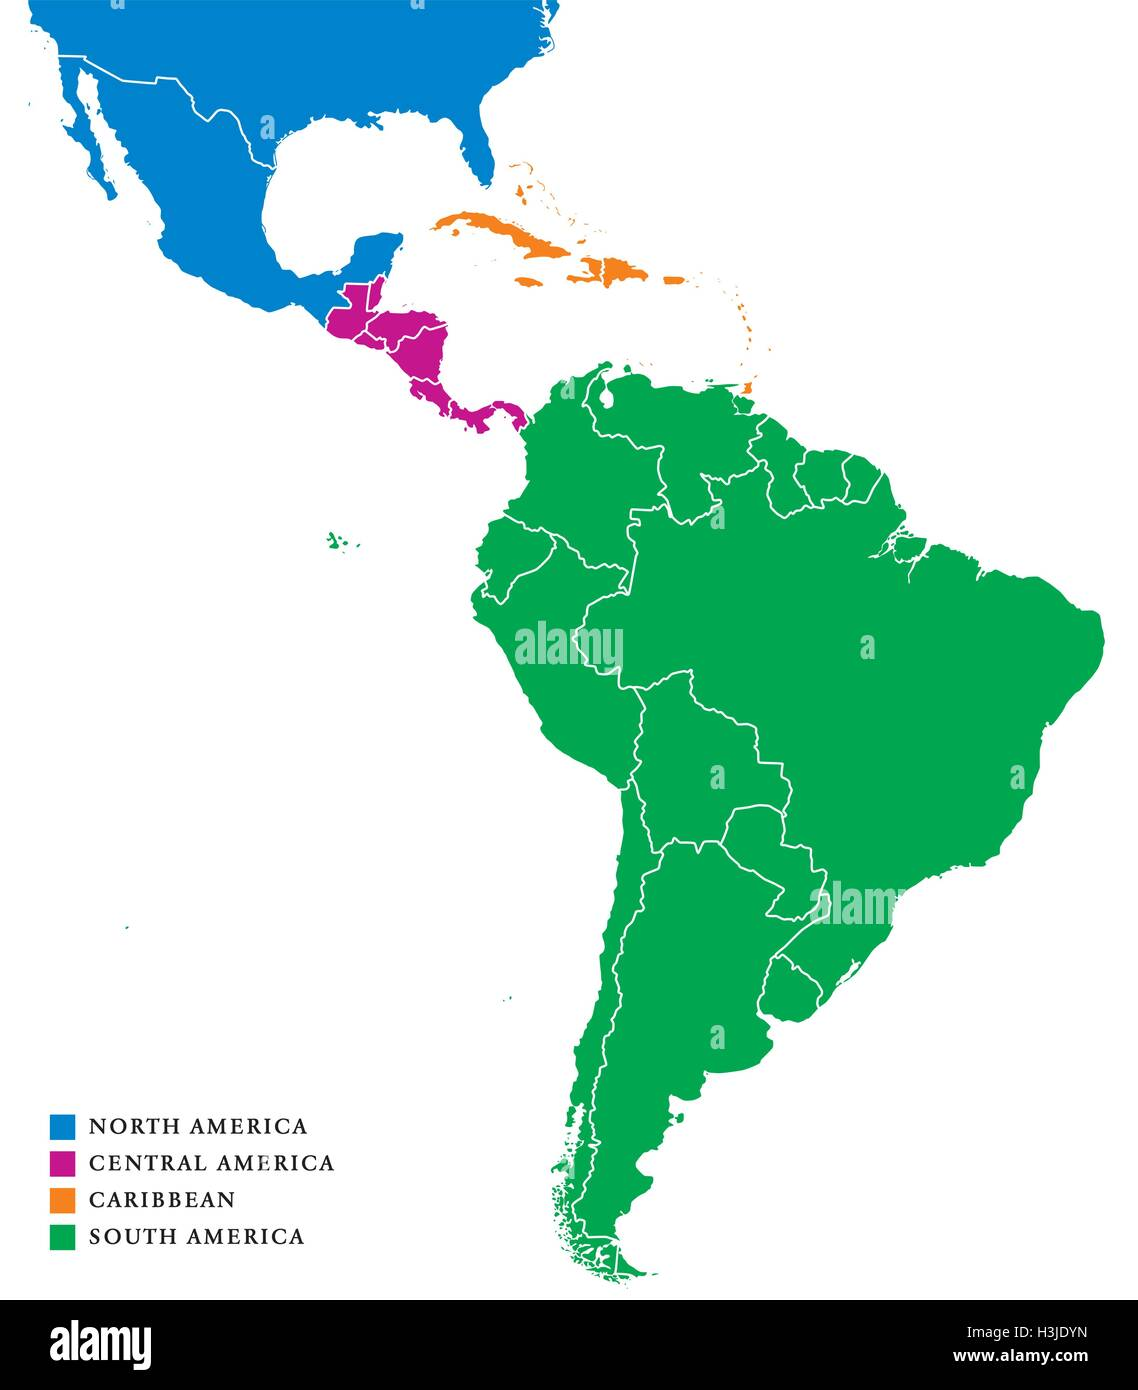 Latin America subregions map. The subregions Caribbean ... on mexico map, croatia map, panama map, morocco map, haiti map, middle east map, costa rica map, australia map, asia map, western hemisphere map, india map, belize map, italy map, uruguay map, spain map, zimbabwe map, ecuador map, europe map, argentina map, africa map,